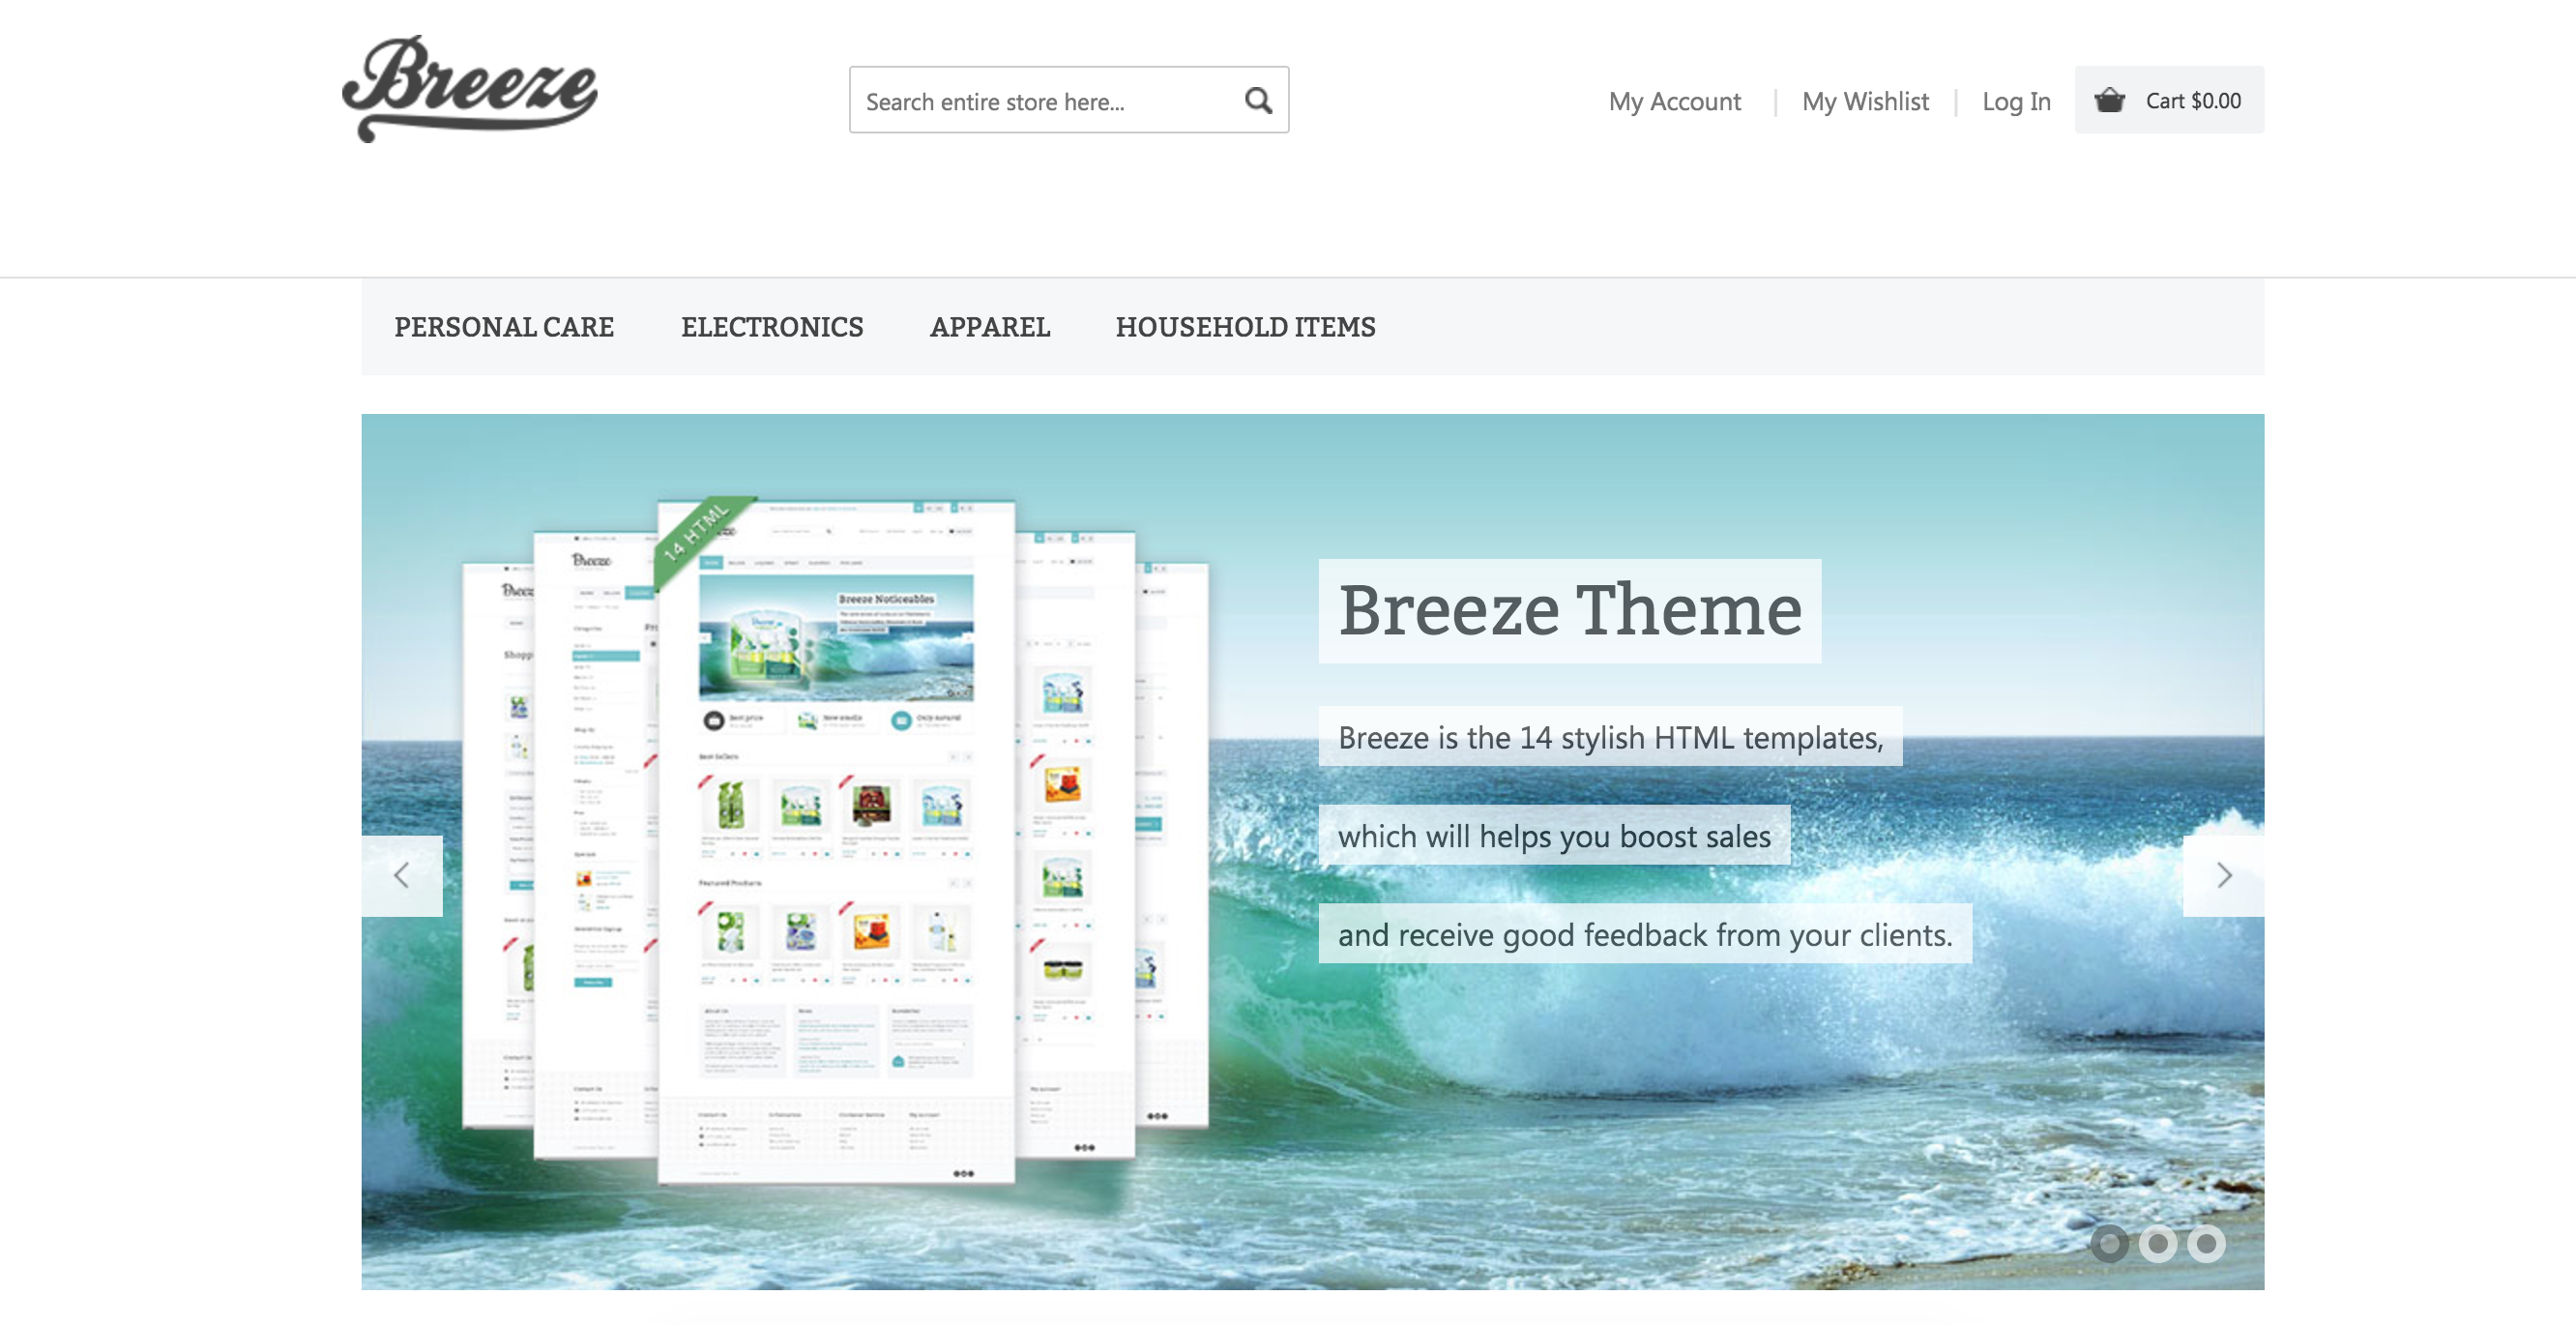 Breeze theme